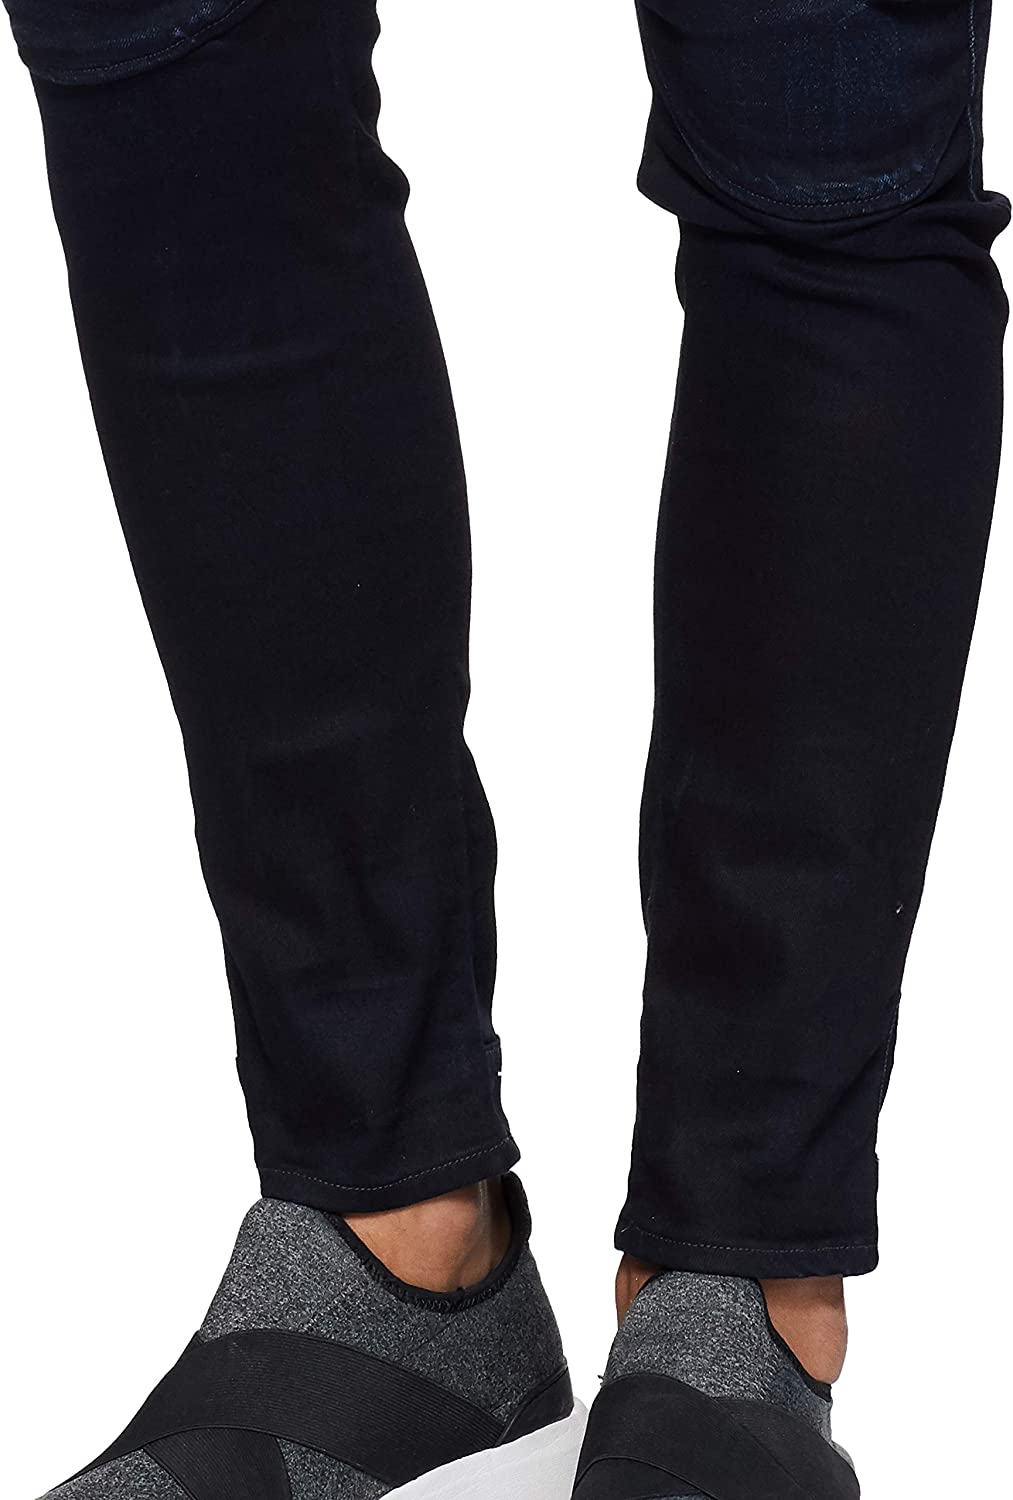 G-Star Raw Mens 5620 3D Zip-Knee Super Slim-Fit Jean